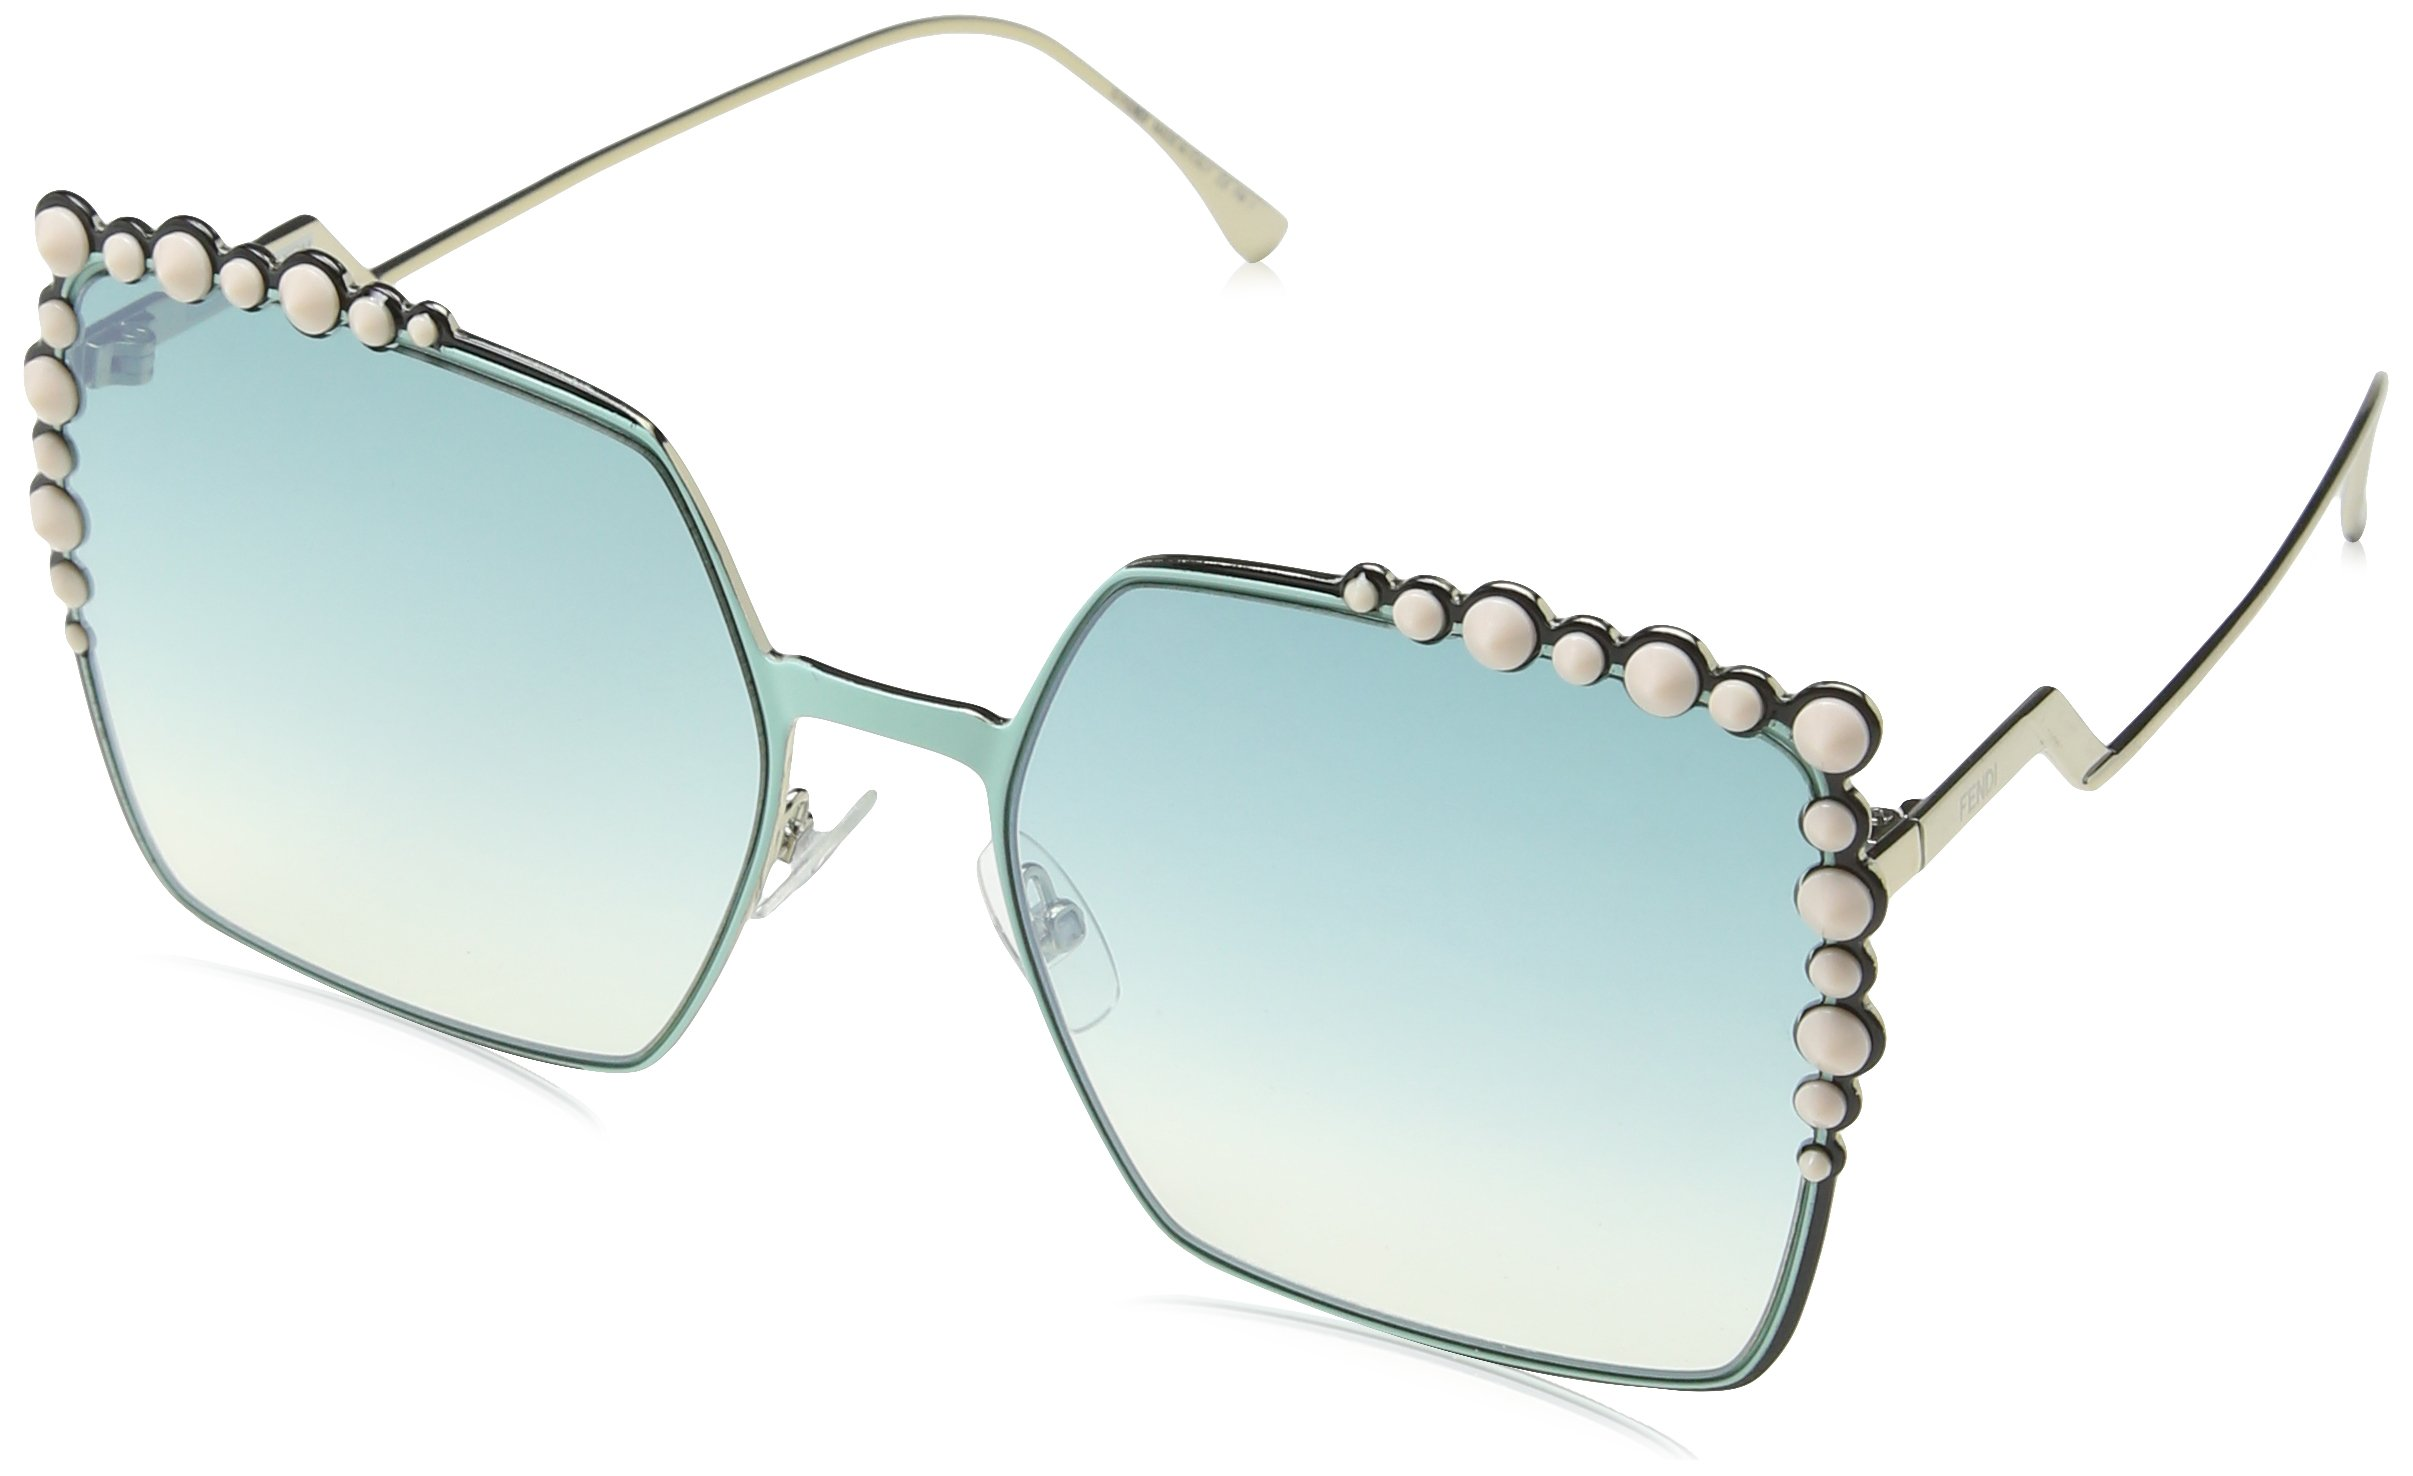 Fendi Sunglasses 0259/S 01ED With Green Yellow Lens